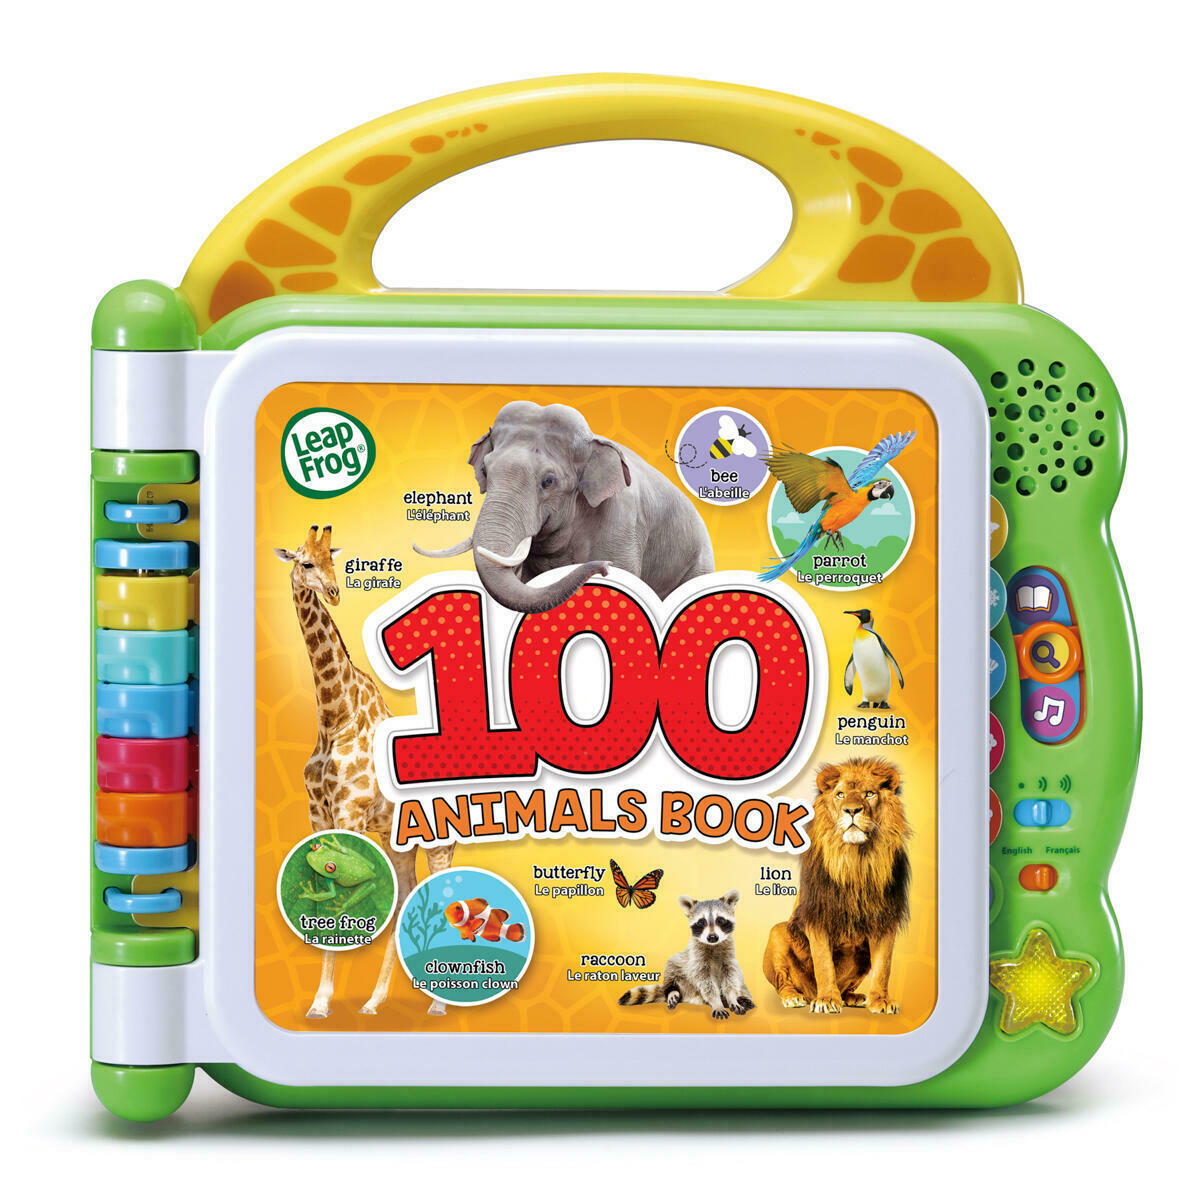 Leapfrog: Learning Friends 100 Animals Book (English / French) image